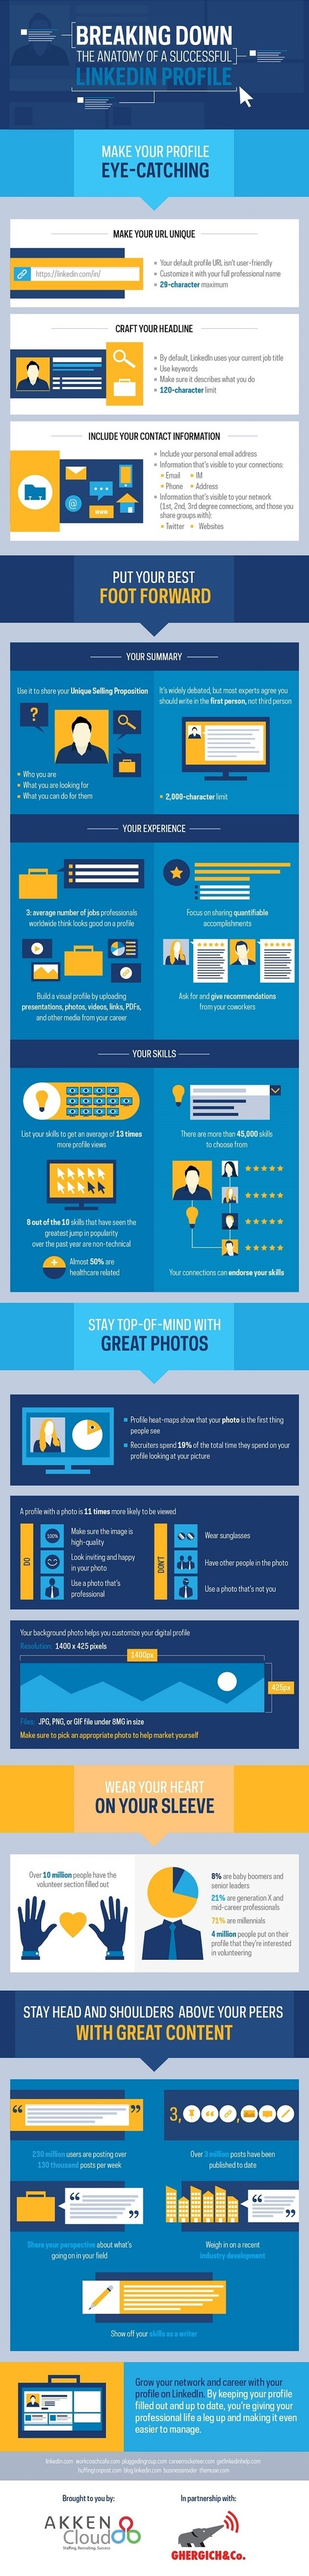 The Anatomy of a Successful LinkedIn Profile #Infographic | MarketingHits | Scoop.it